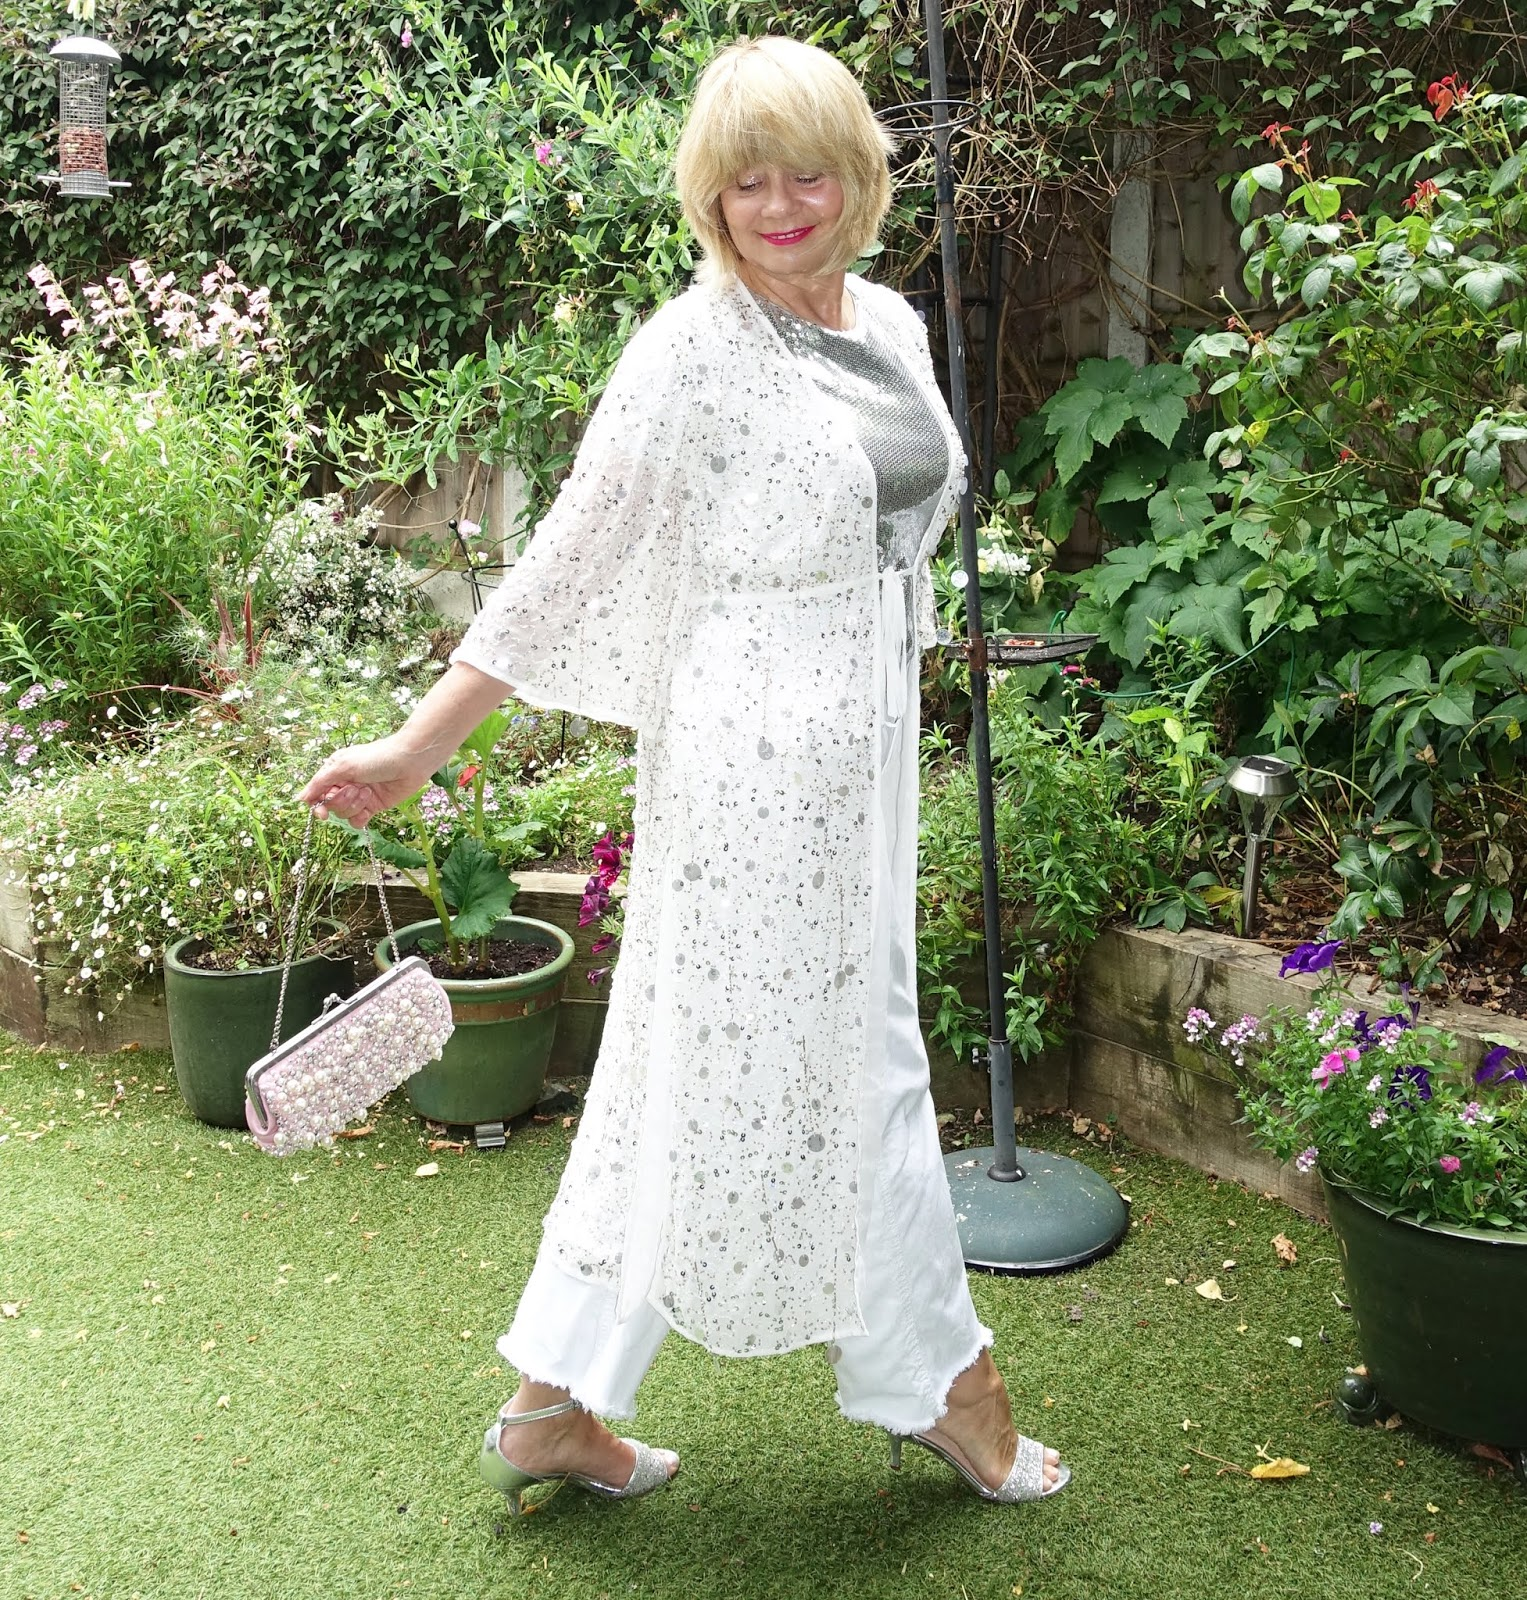 Wearing sequins and embellishments can be a very flattering look for the over 50s as metallics, like pearls, reflect back to the face and add a youthful glow. Is This Mutton, the fashion and beauty blog for the over 50s, shows how to create a show stopper summer outfit in white and silver.